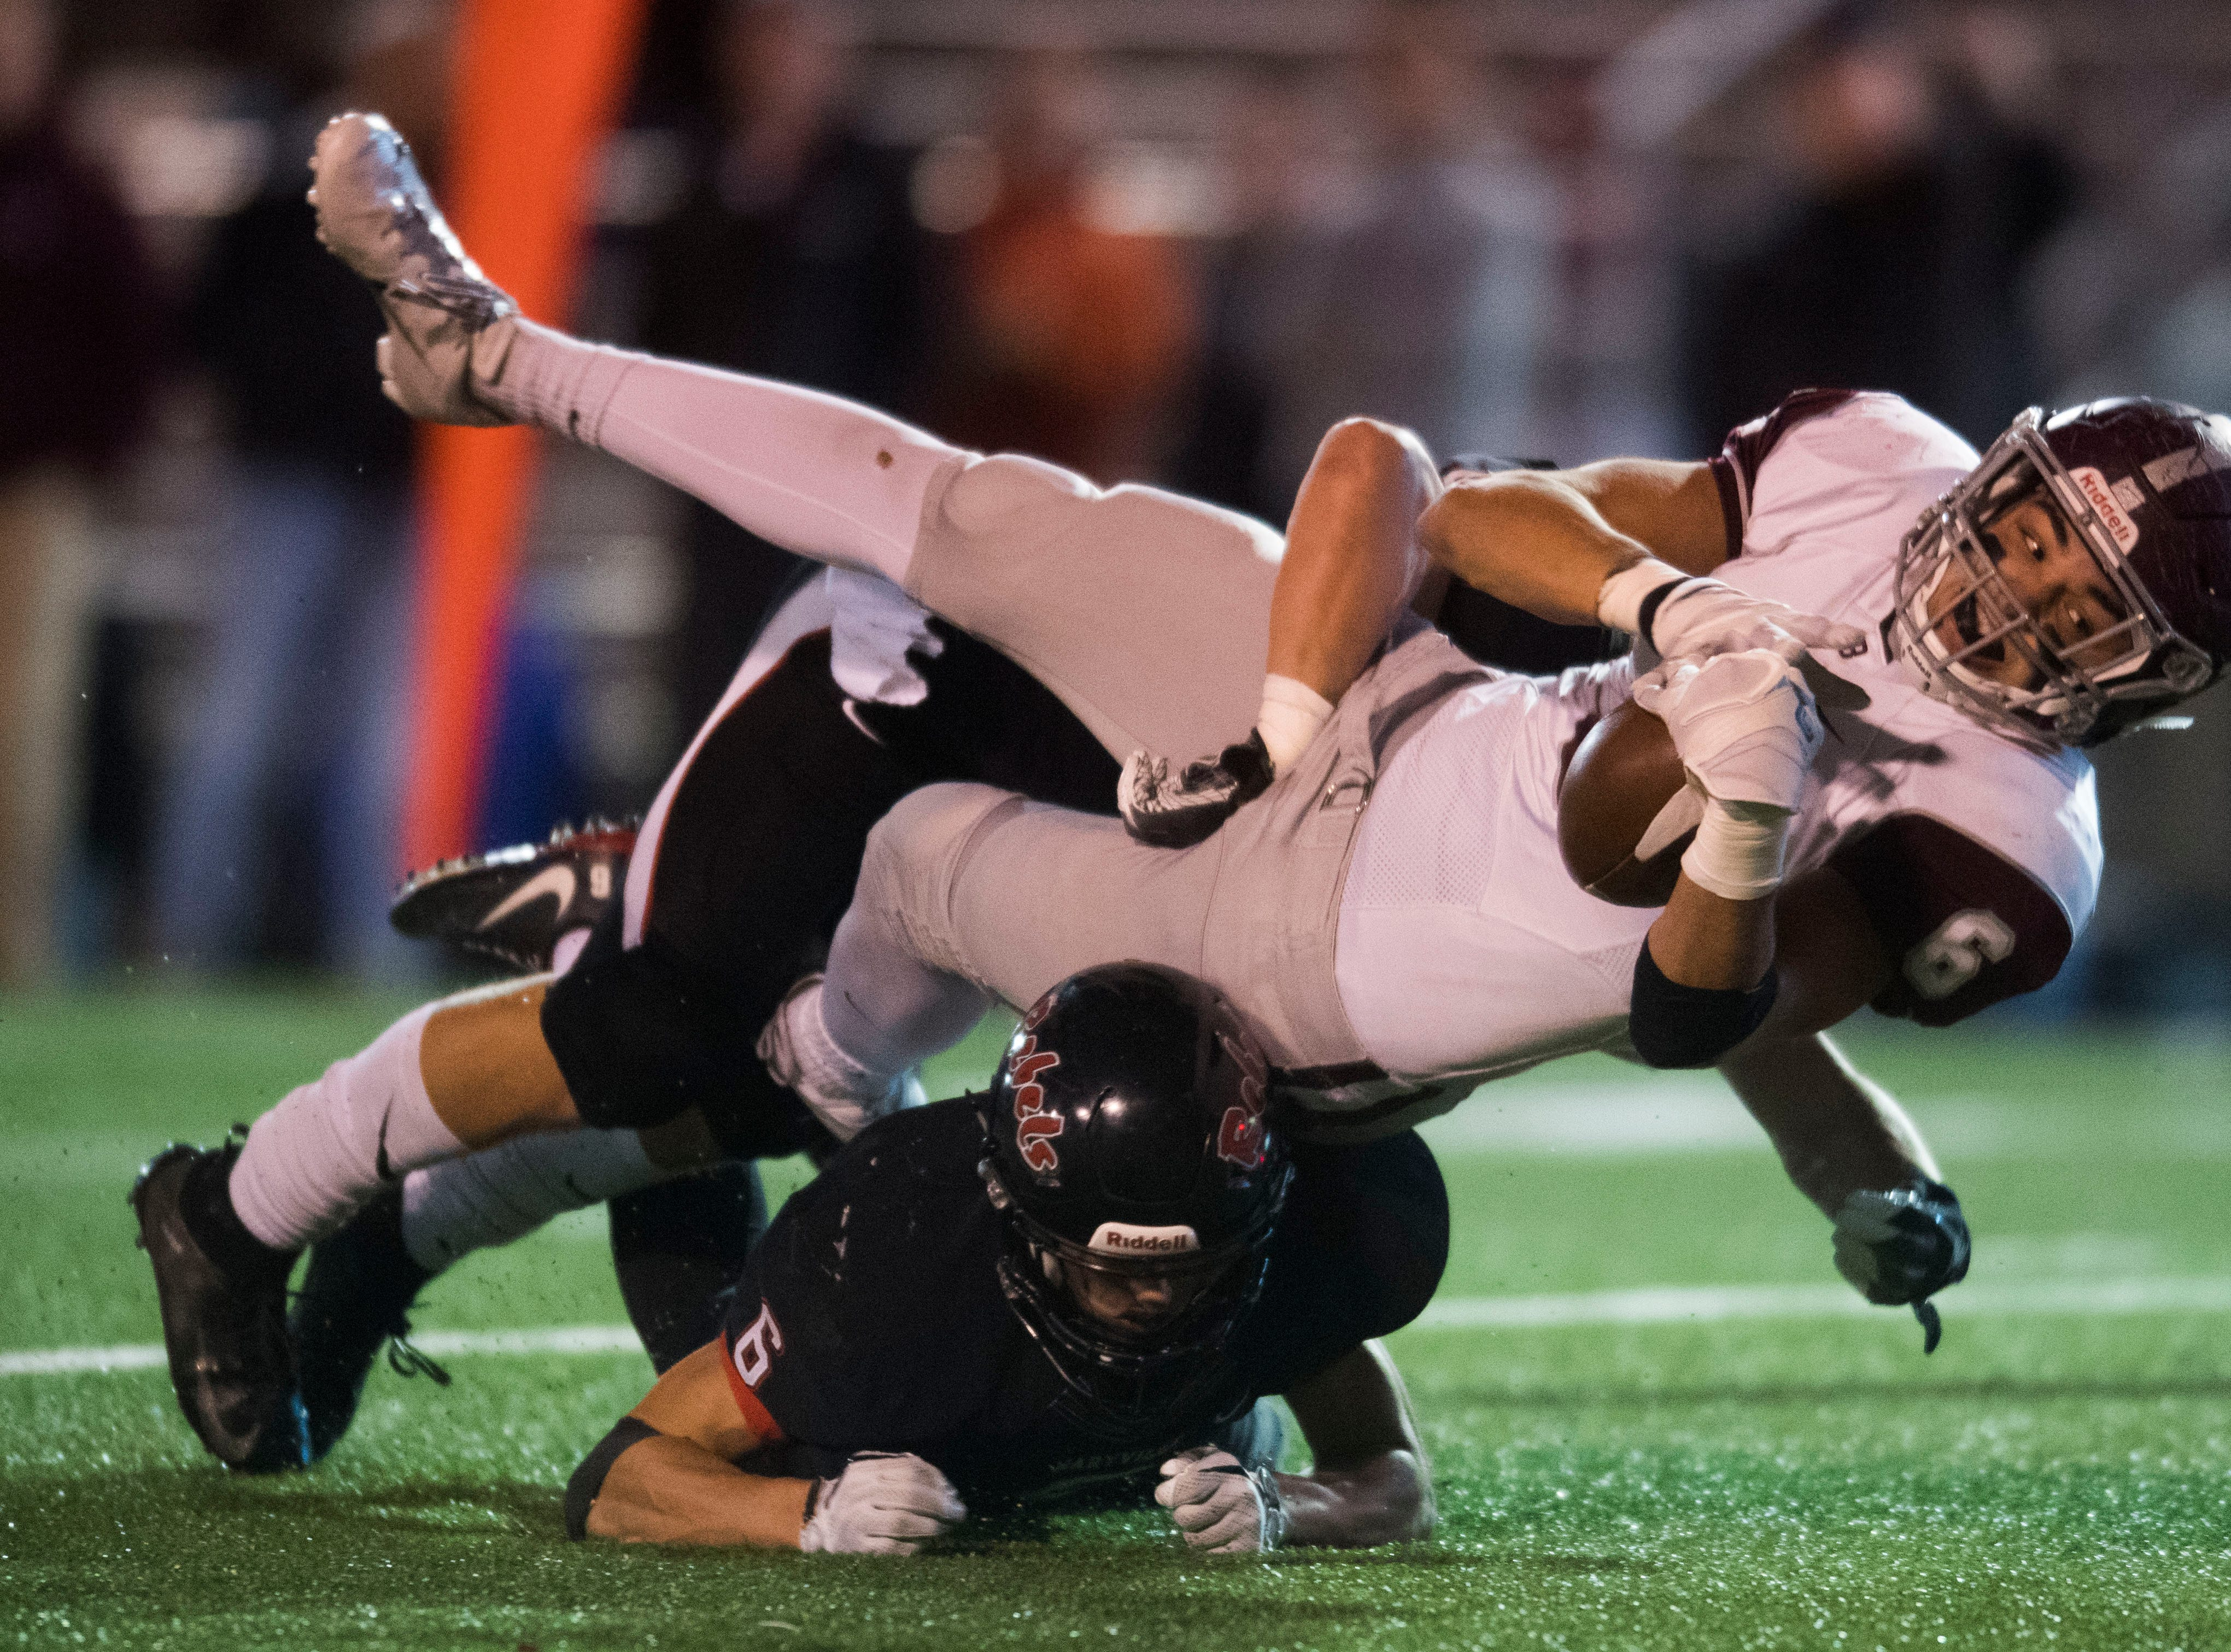 Bearden's Addison Ironside (6) is tripped up by Maryville's Michael Jones (6) during a first round playoff game between Maryville and Bearden at Maryville, Friday, Nov. 2, 2018. Maryville defeated Bearden 28-7.